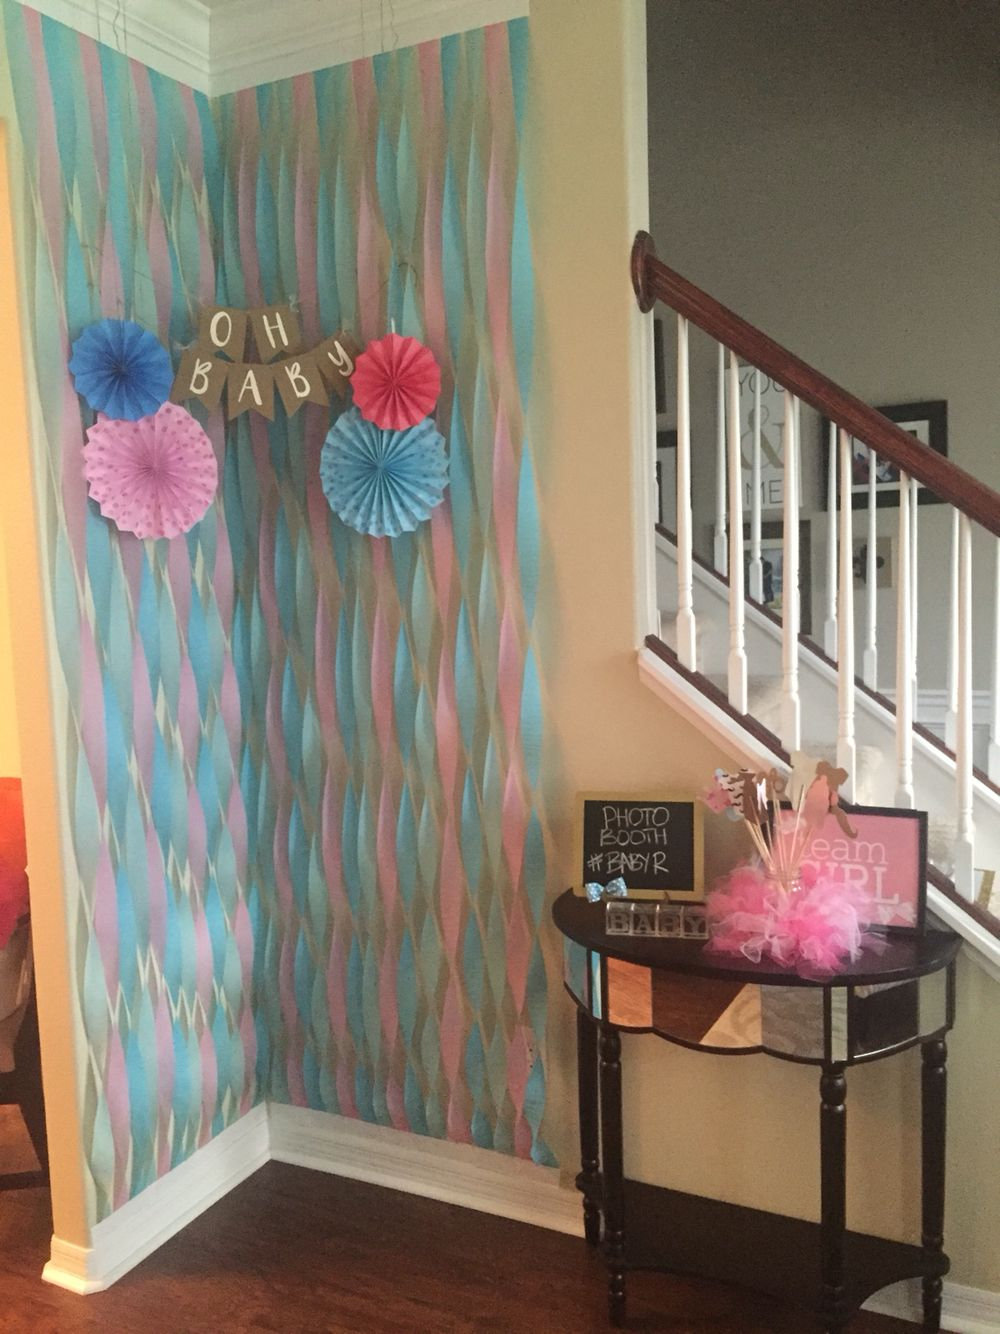 Photo Booth Idea For A Gender Reveal Party Pinteres